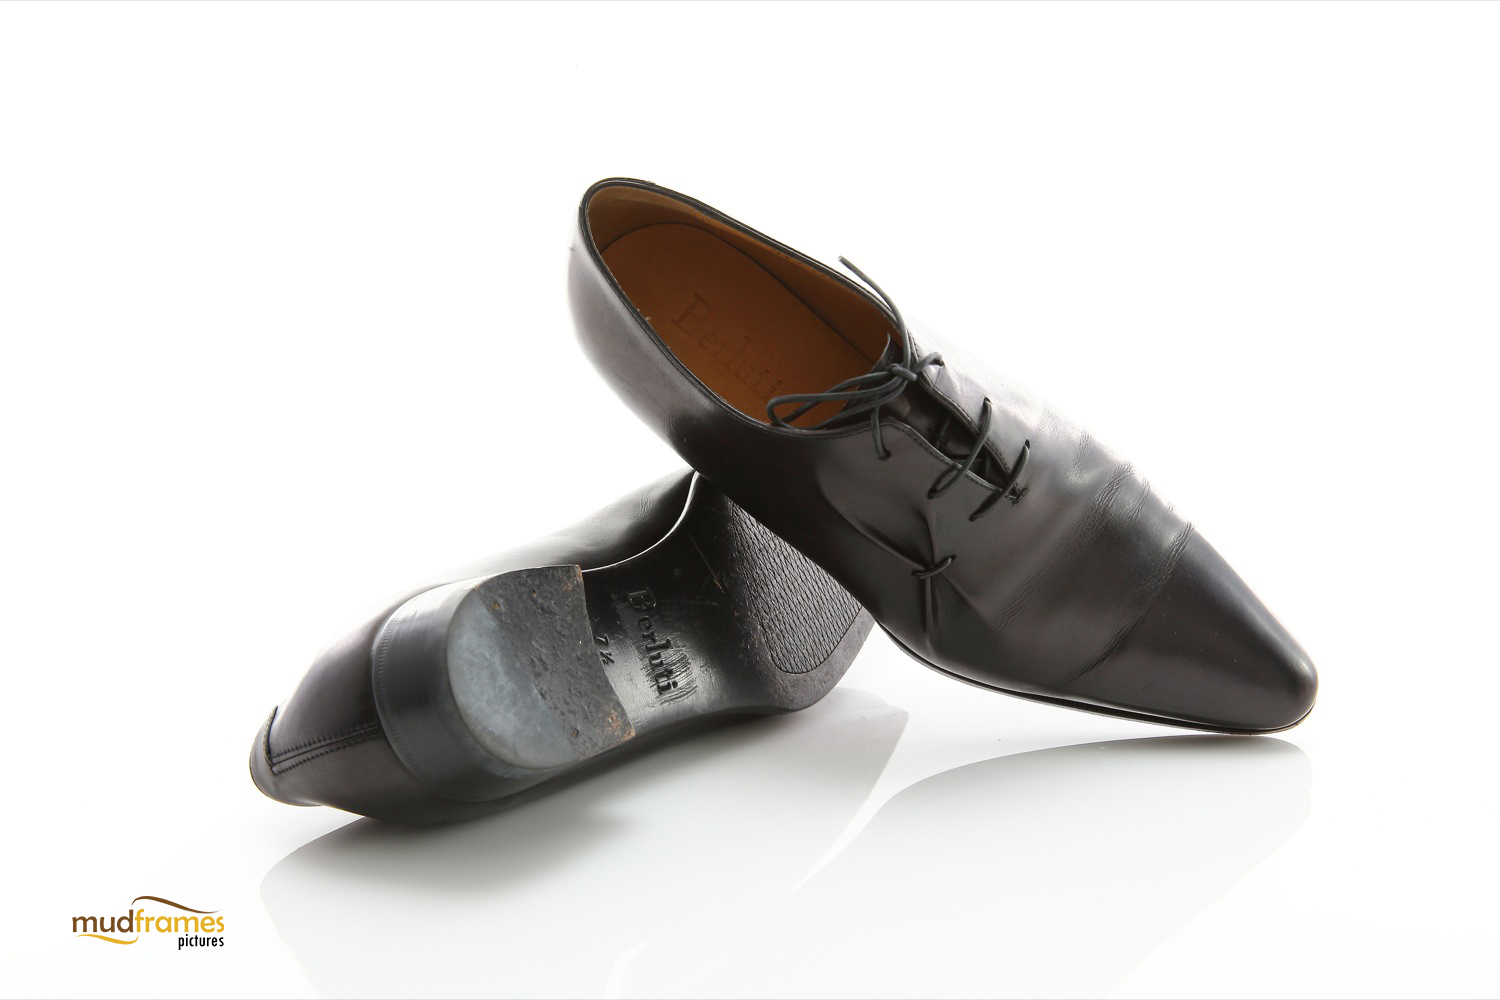 Black Berluti shoes on white background